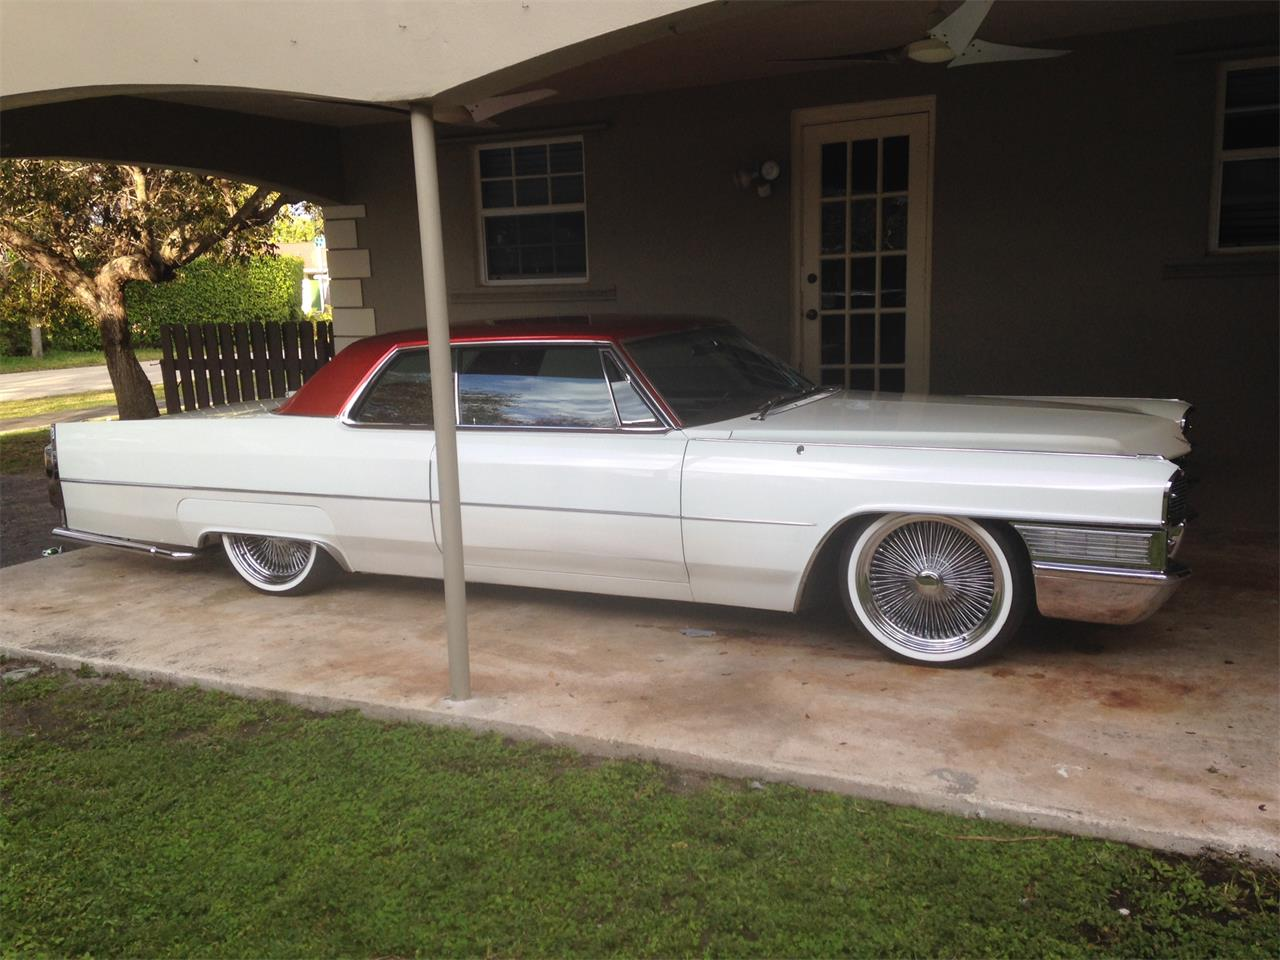 Large Picture of '65 Cadillac DeVille - $19,995.00 Offered by a Private Seller - LJIS